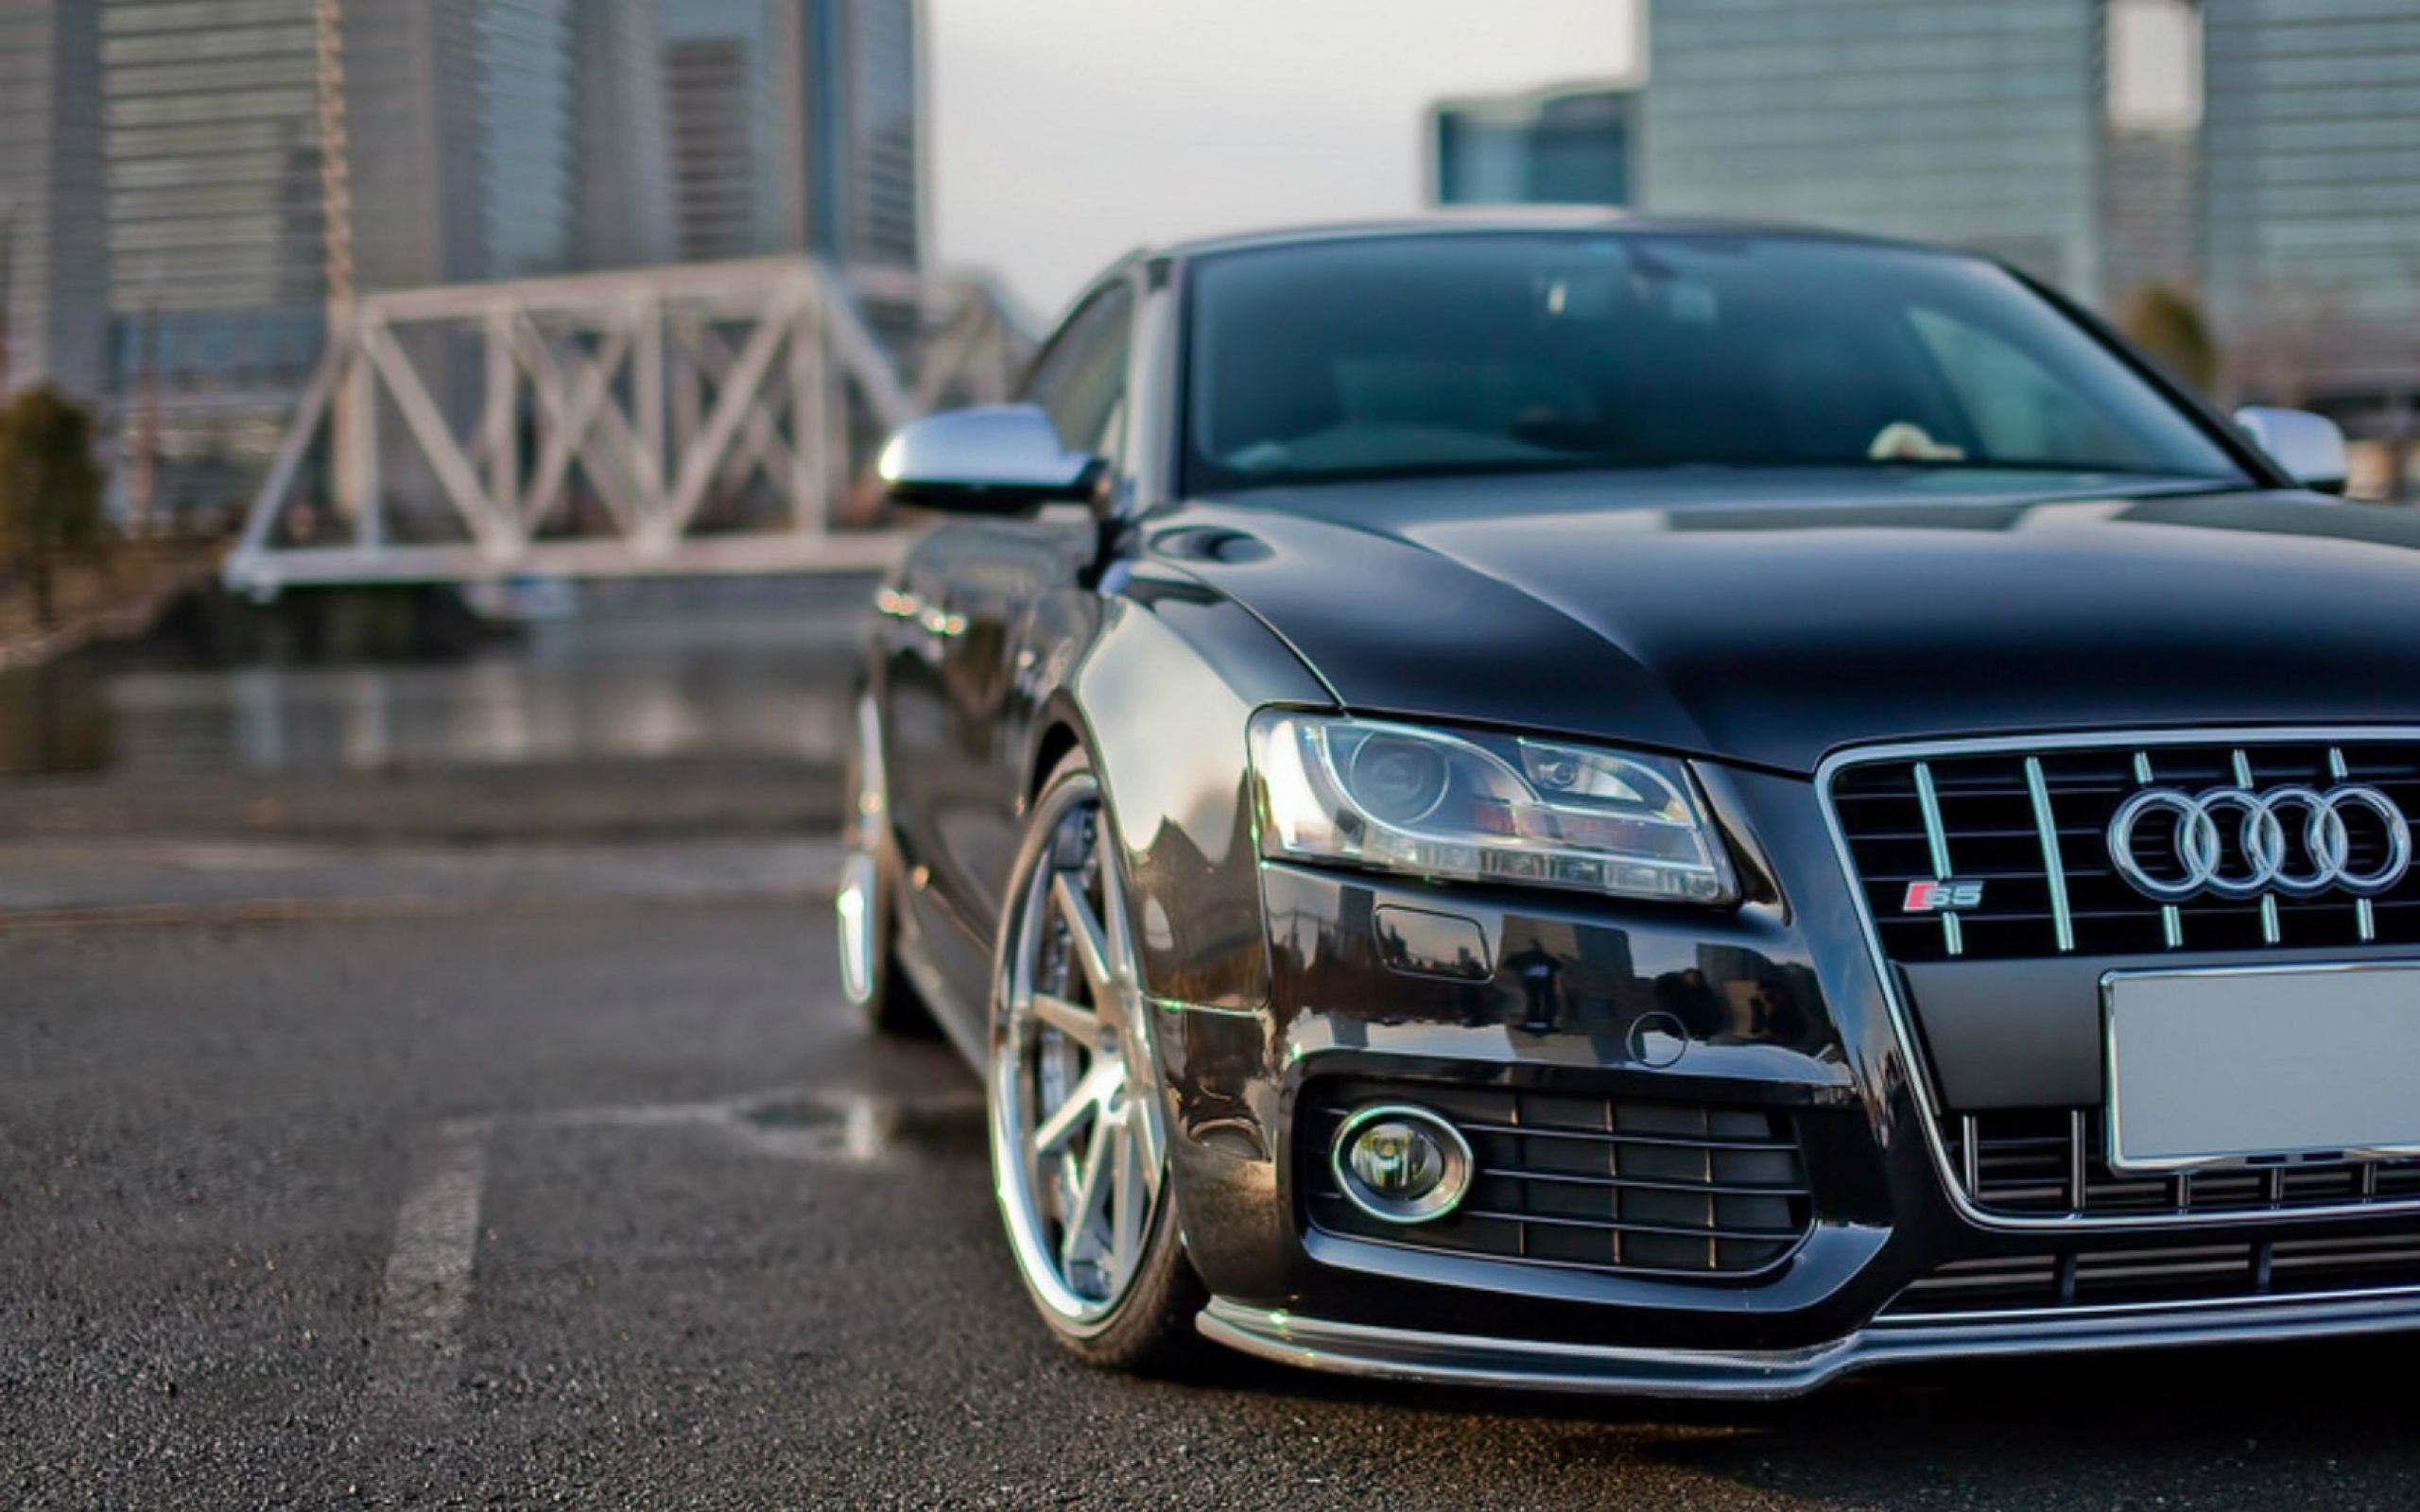 Audi S4 Wallpapers HD